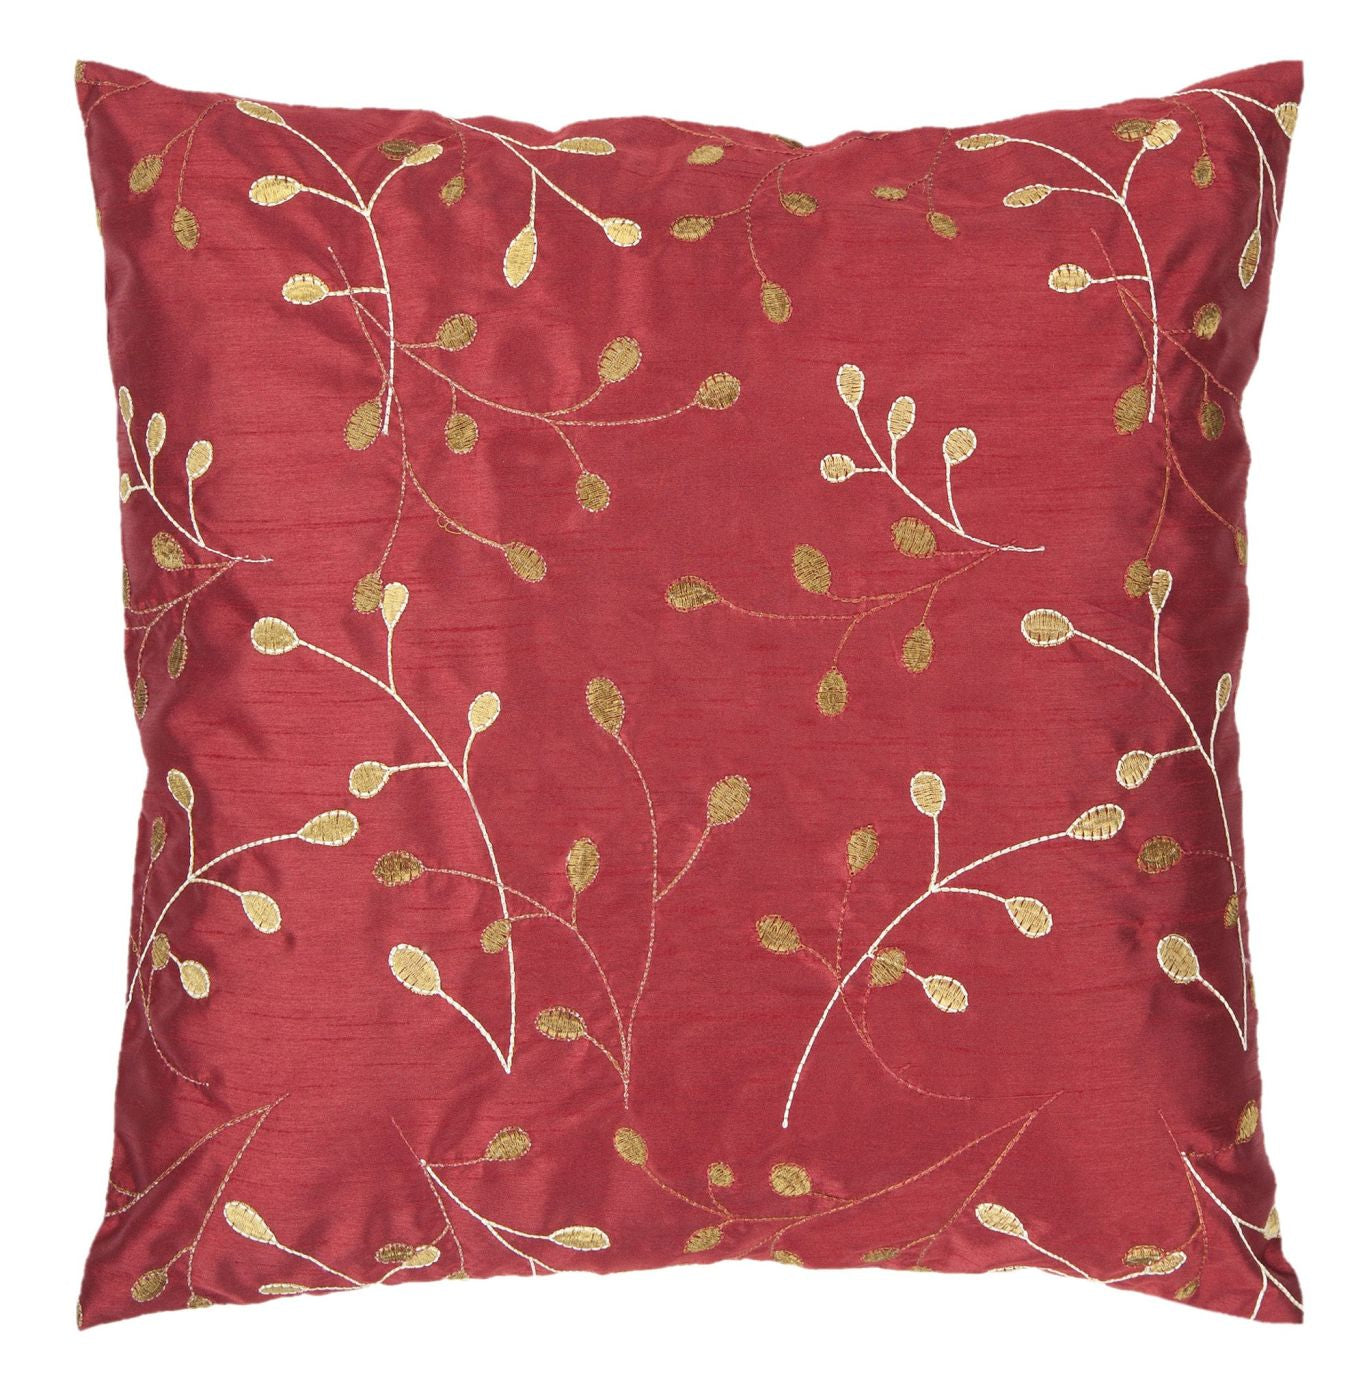 Throw Pillow Warehouse : Surya Blossom Throw Pillow Red, Brown HH093-1818D. Only $39.60 at Contemporary Furniture Warehouse.